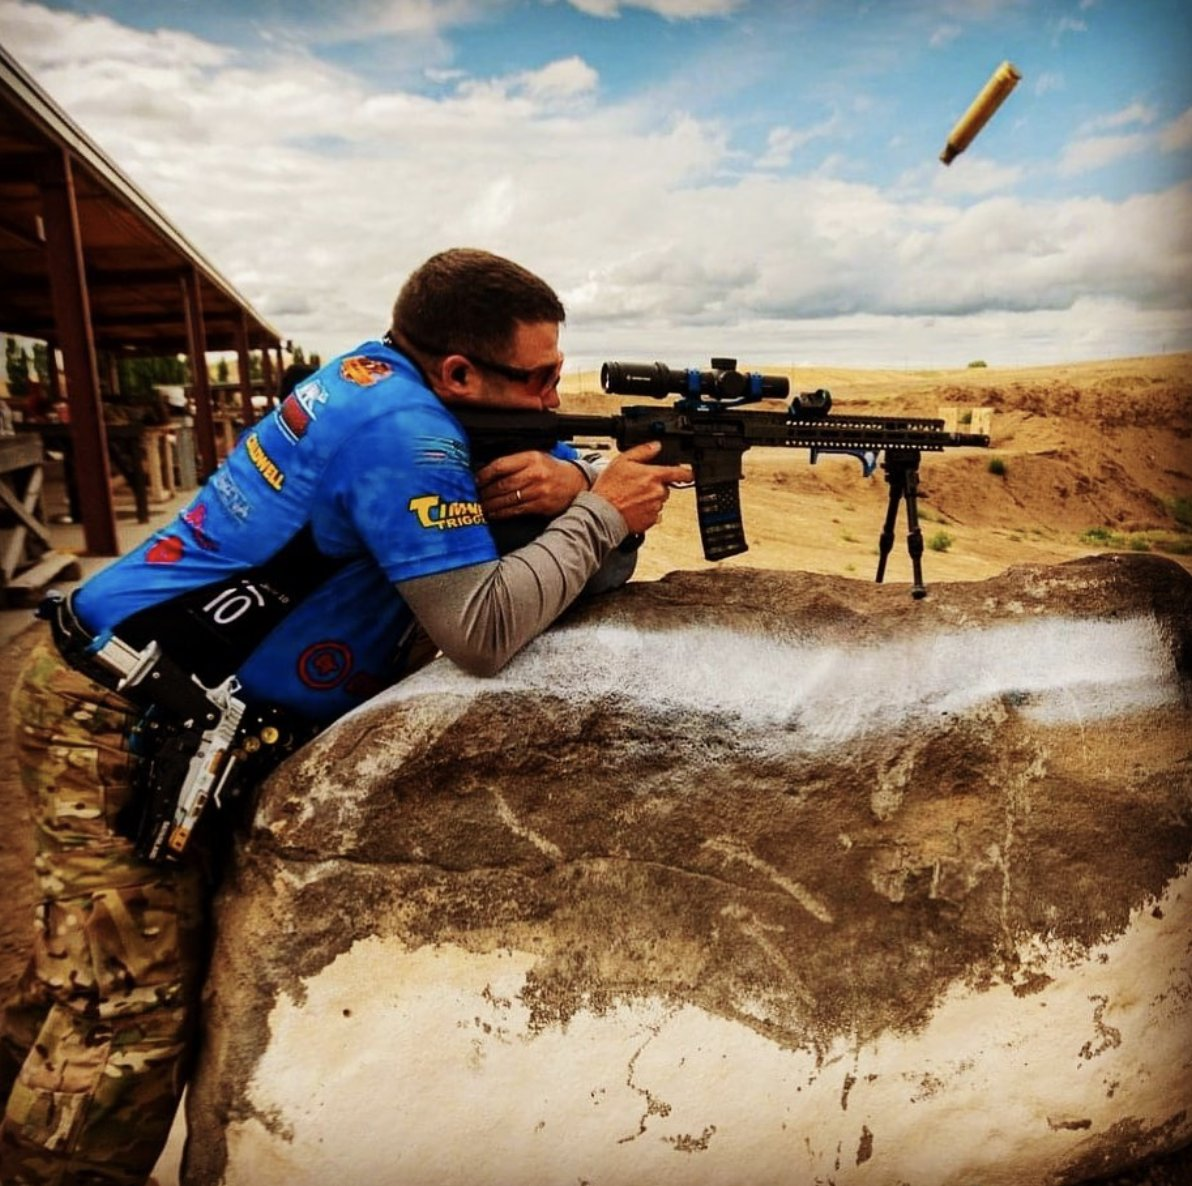 Sun's out, guns out, ESP's in.  : @oregun_vets via Team 144 #earprotection #shootingsports #espamerica #hearingprotection<br>http://pic.twitter.com/0uGA7ERv1H